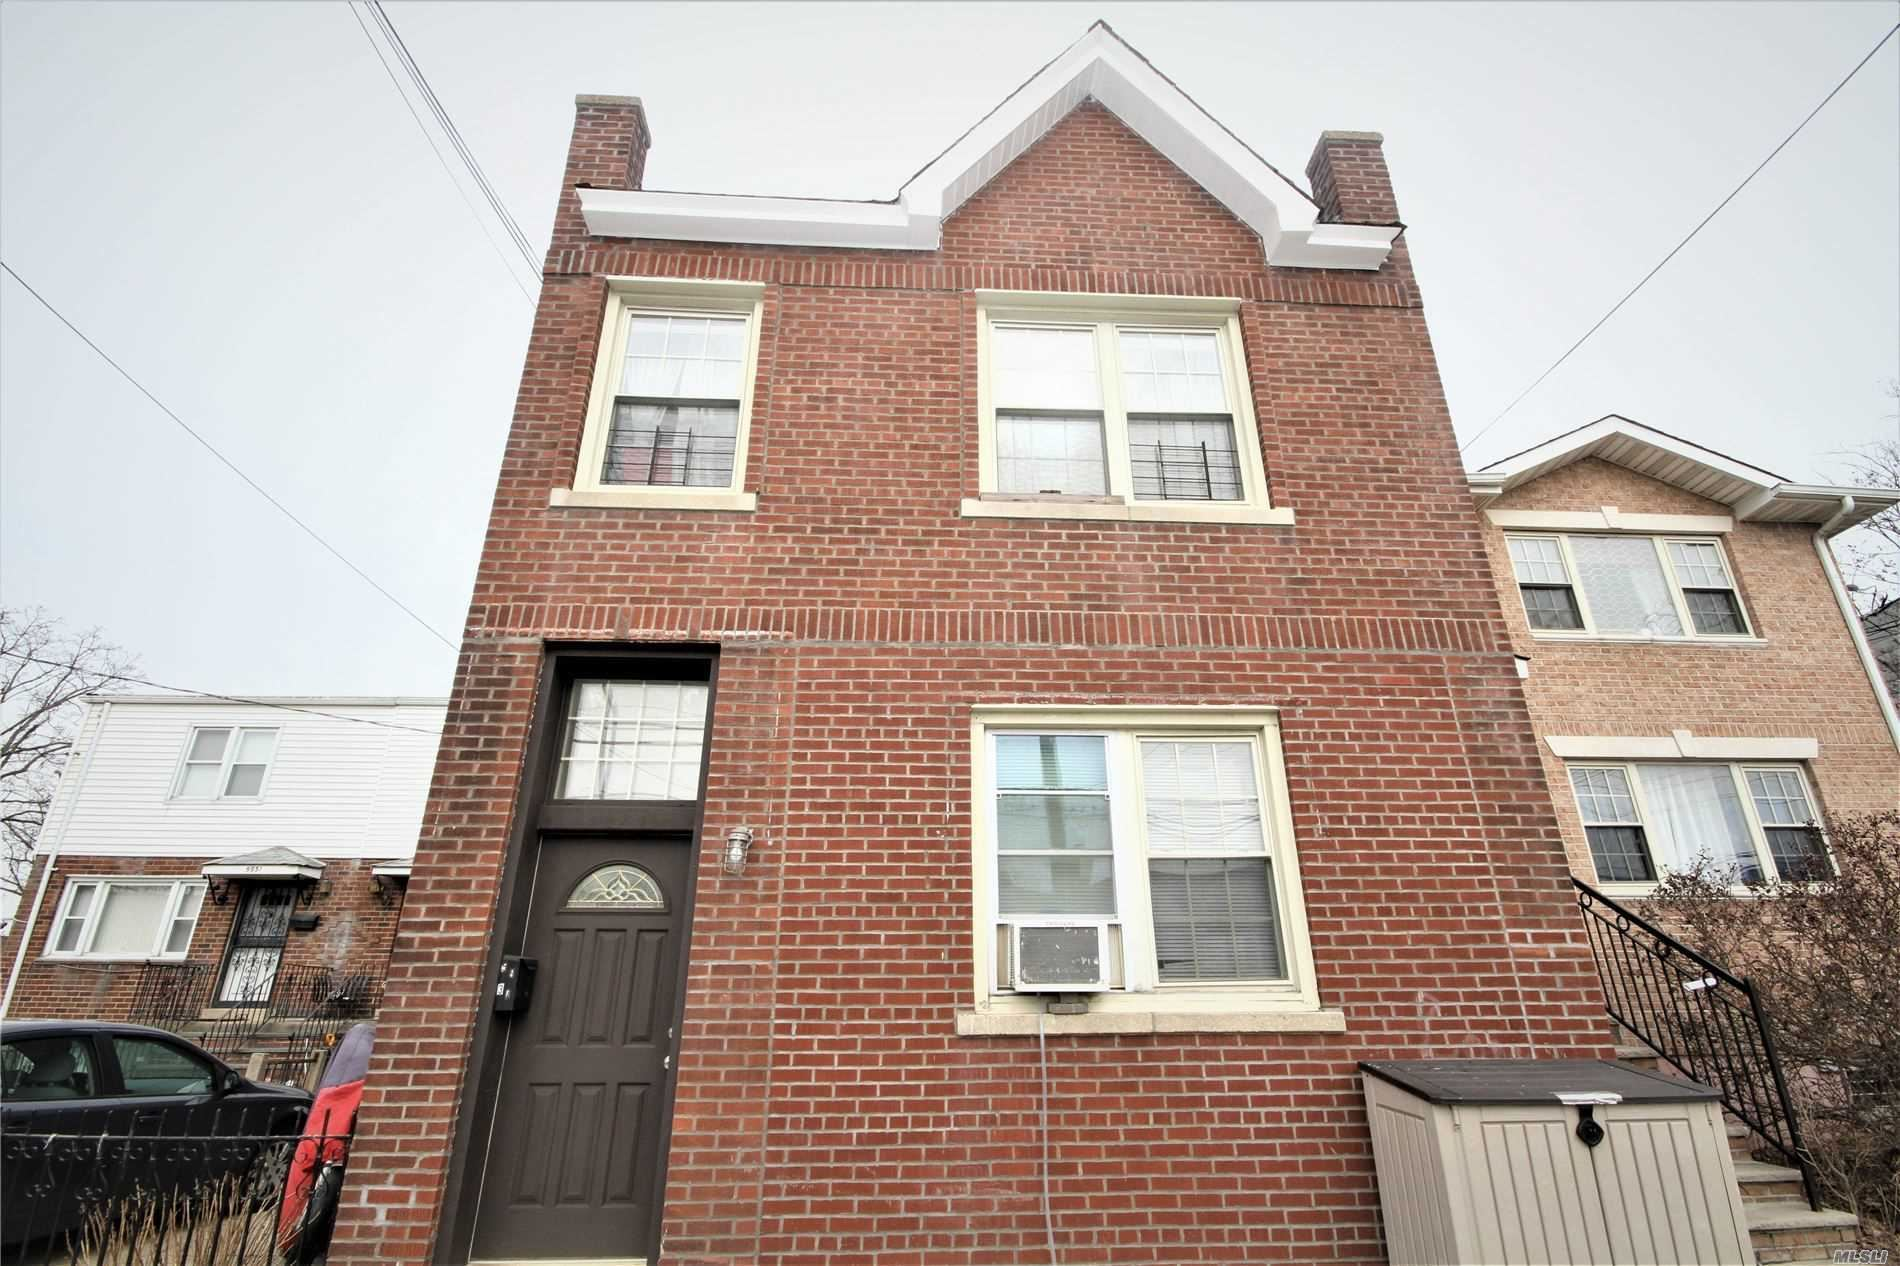 59-37 Maspeth Avenue, Maspeth, NY 11378 - MLS#: 3202230